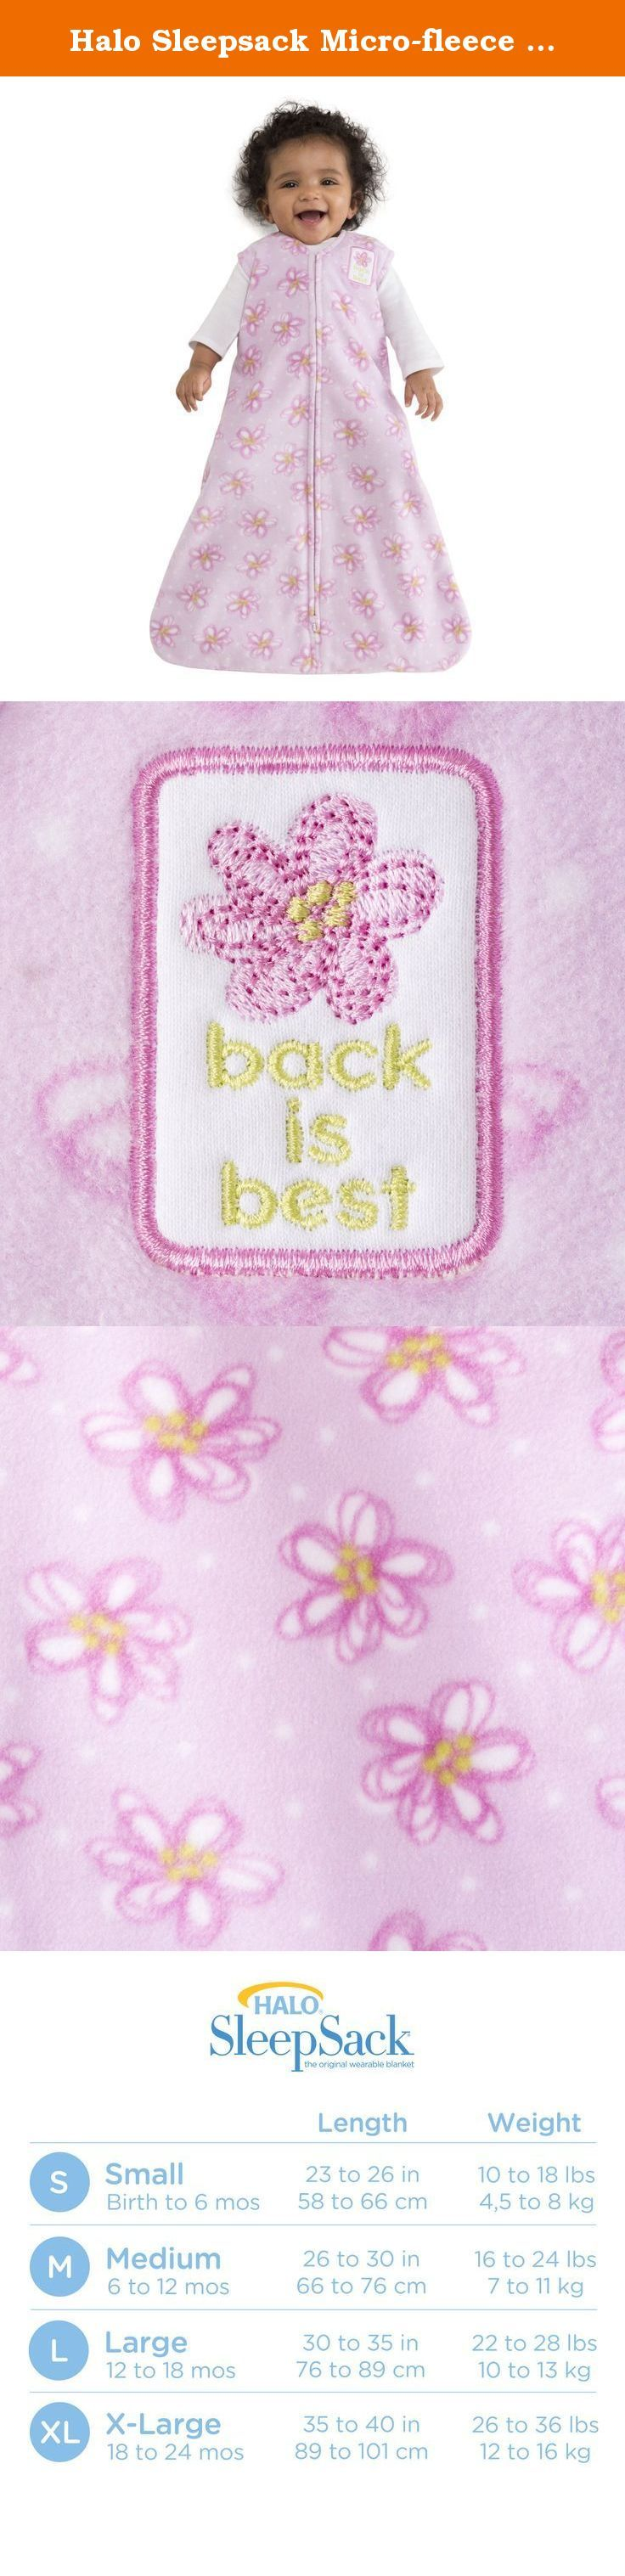 Halo Sleepsack Micro-fleece Wearable Blanket, Pink Swirly Flowers, Small. HALO SleepSack wearable blanket: The Safer Way to Sleep The HALO SleepSack wearable blanket replaces loose blankets in the crib that can cover your baby s face and interfere with breathing. In addition to helping your baby sleep safer, the HALO SleepSack wearable blanket helps your baby sleep better, too. It is a warm cuddly blanket they cannot kick off; ensuring baby sleeps soundly throughout the night. Used in...